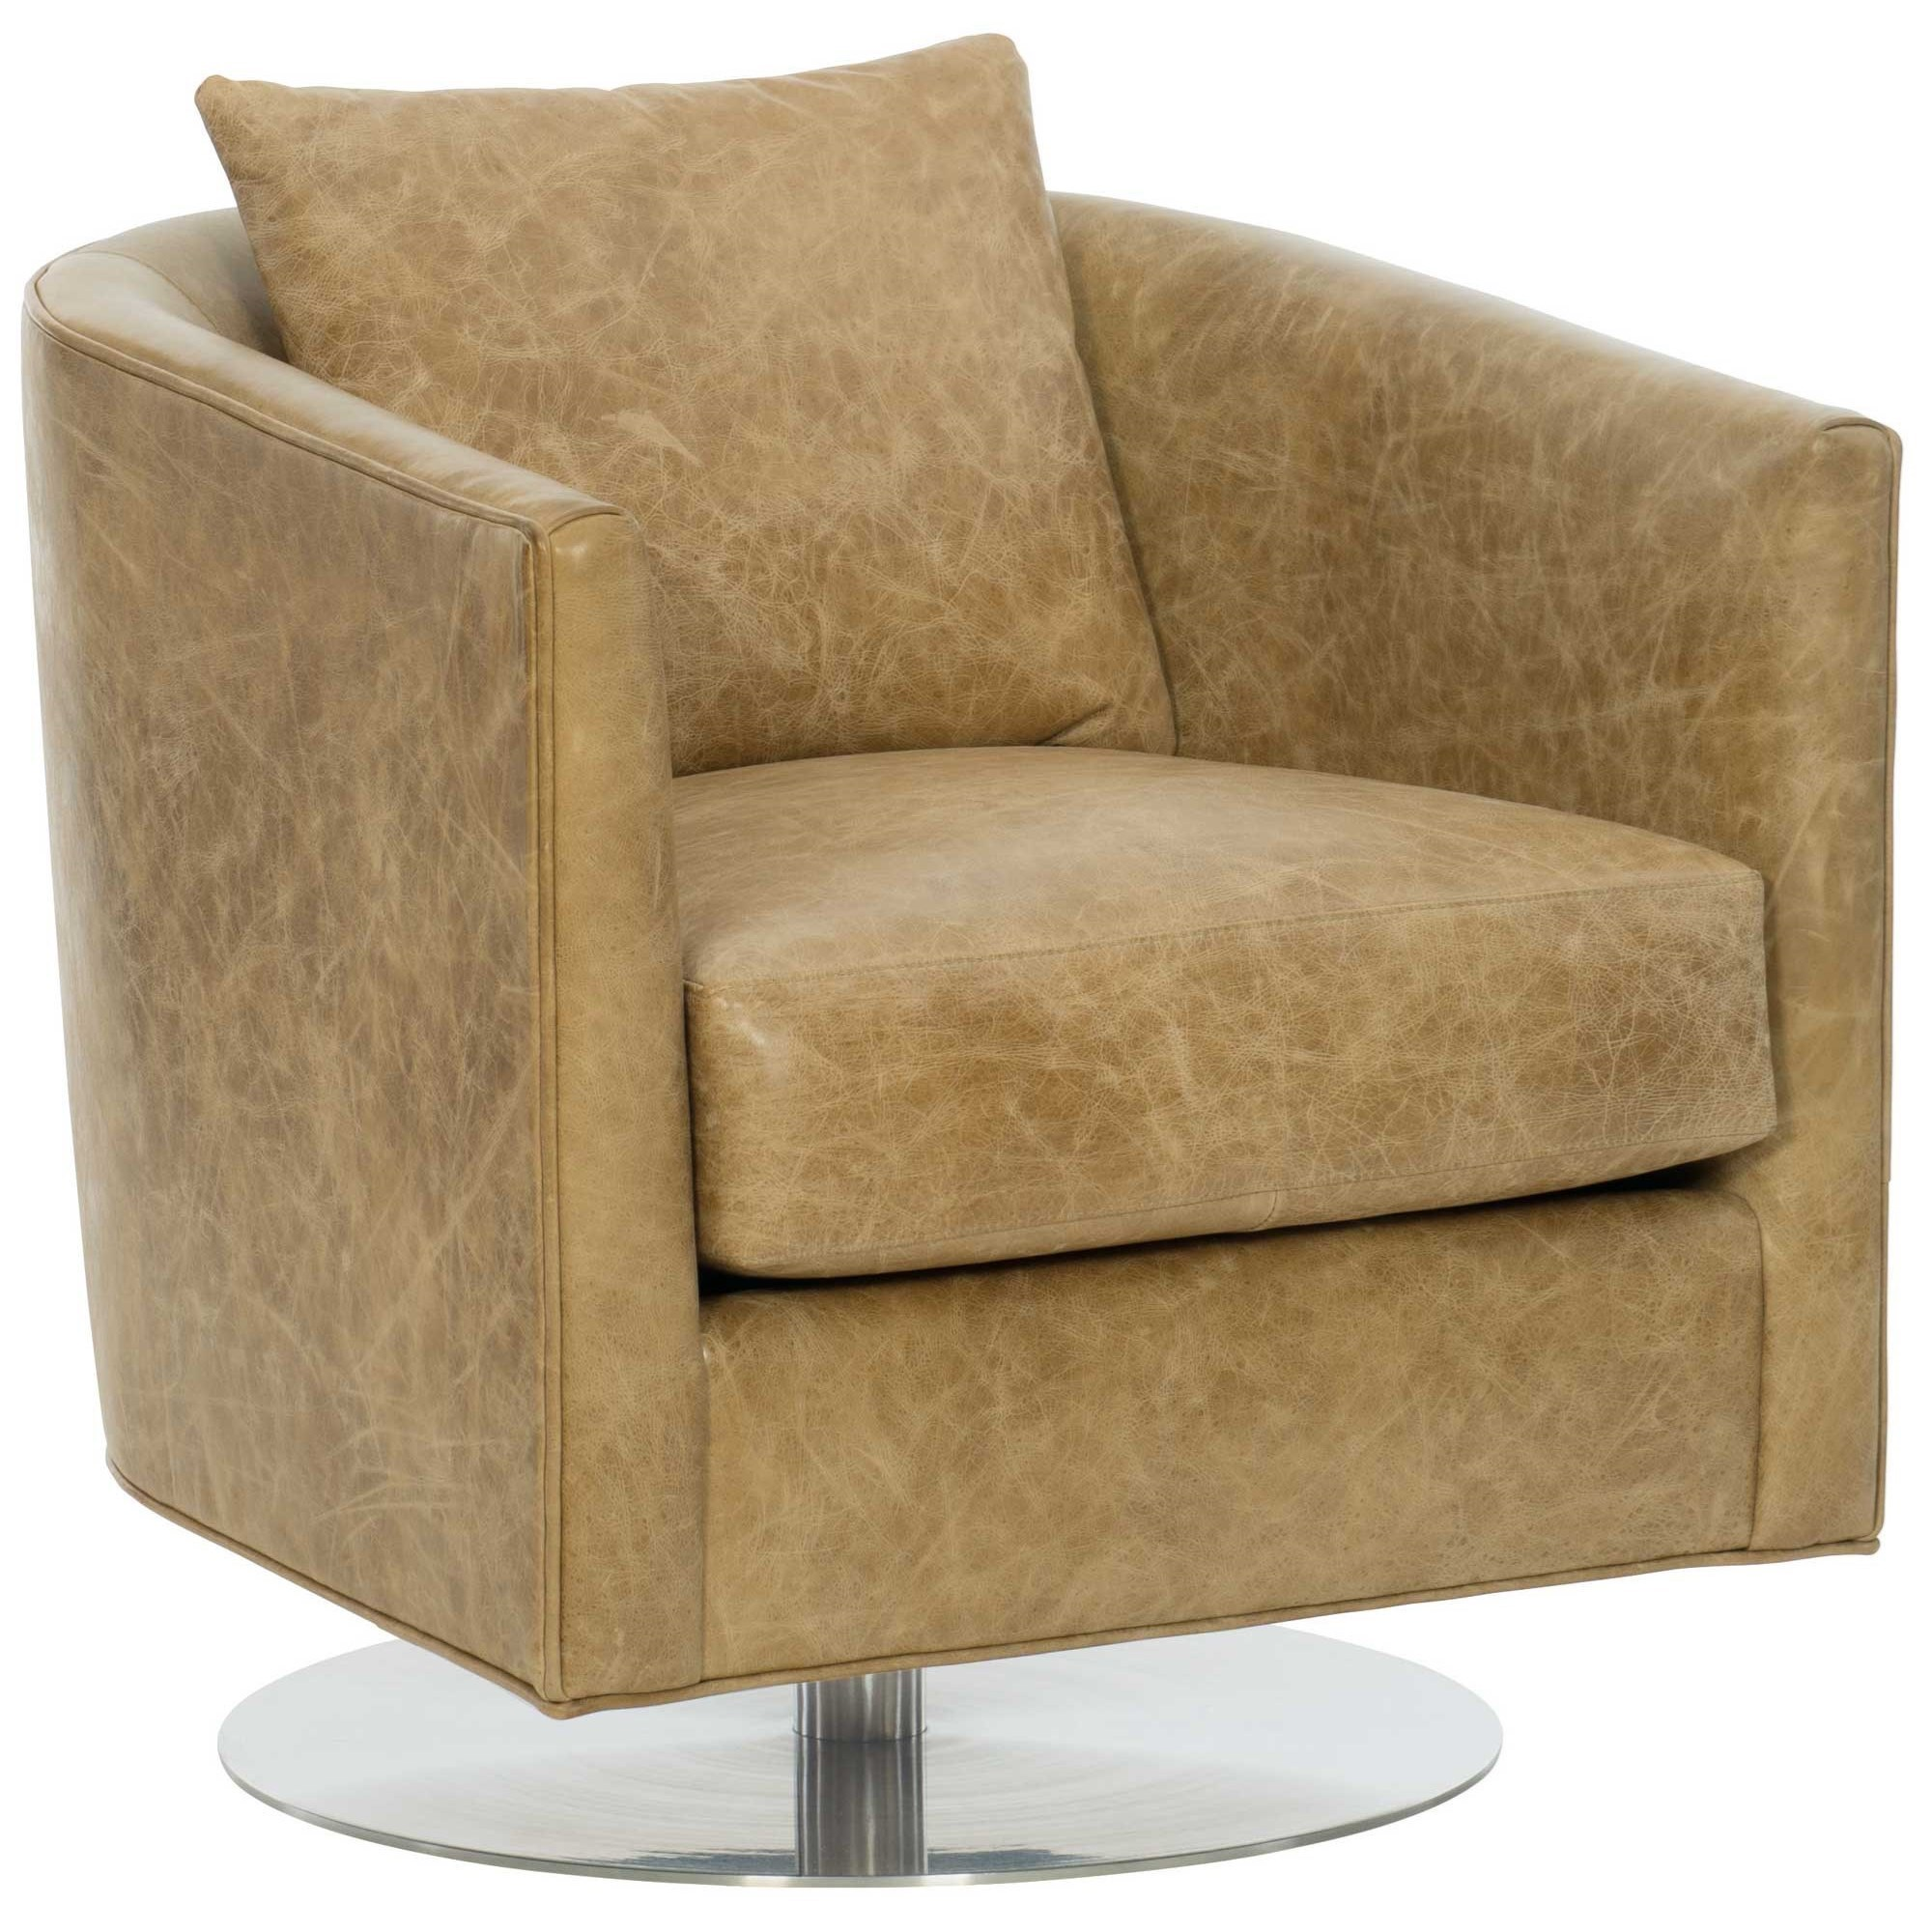 barrel swivel chairs upholstered wedding chair cover hire norfolk bernhardt malone contemporary sprintz maloneswivel